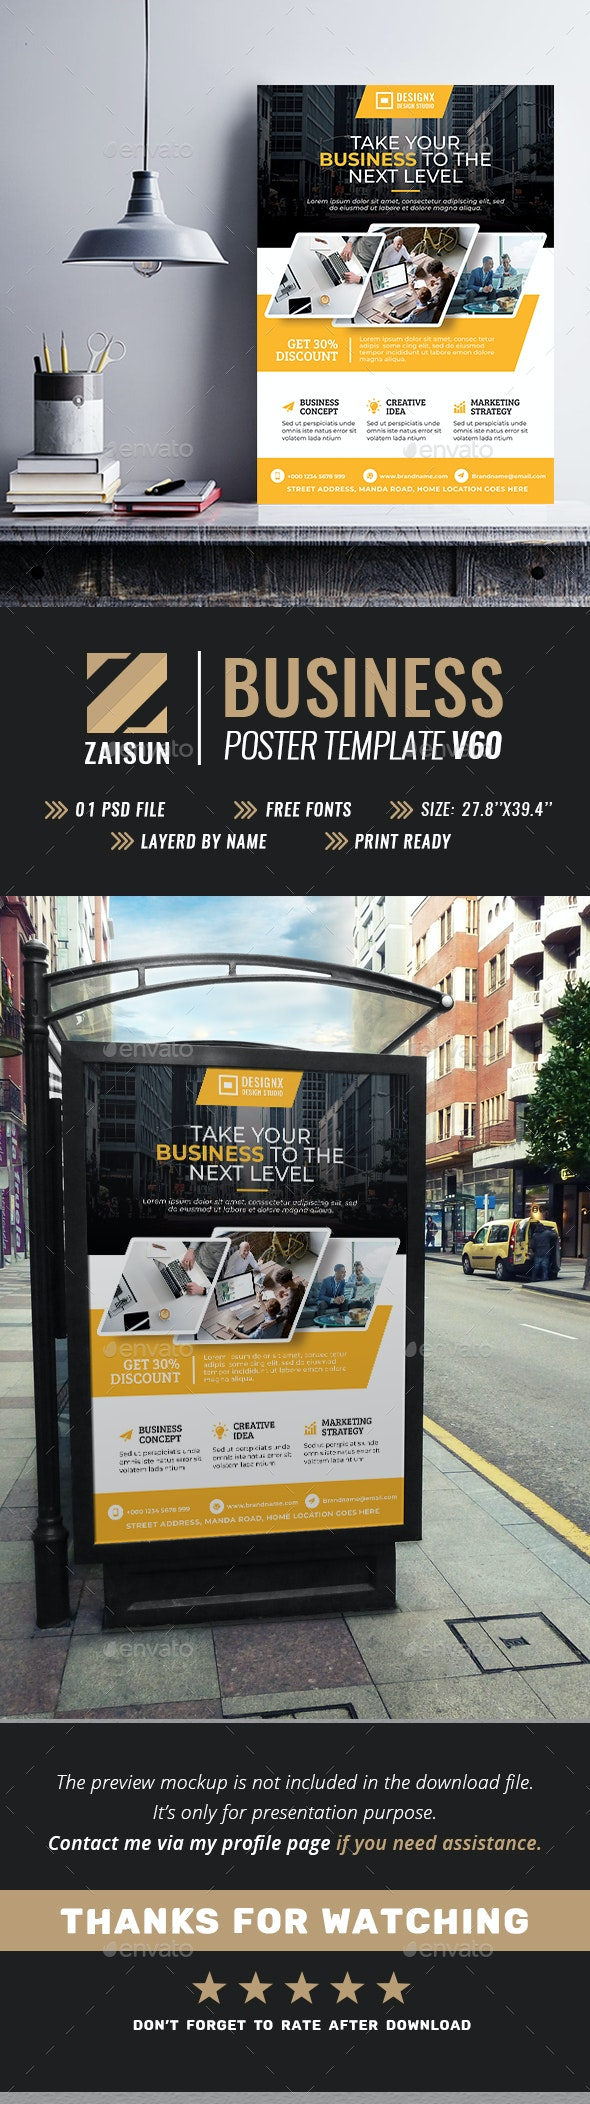 Business Poster Template V60 - Signage Print Templates